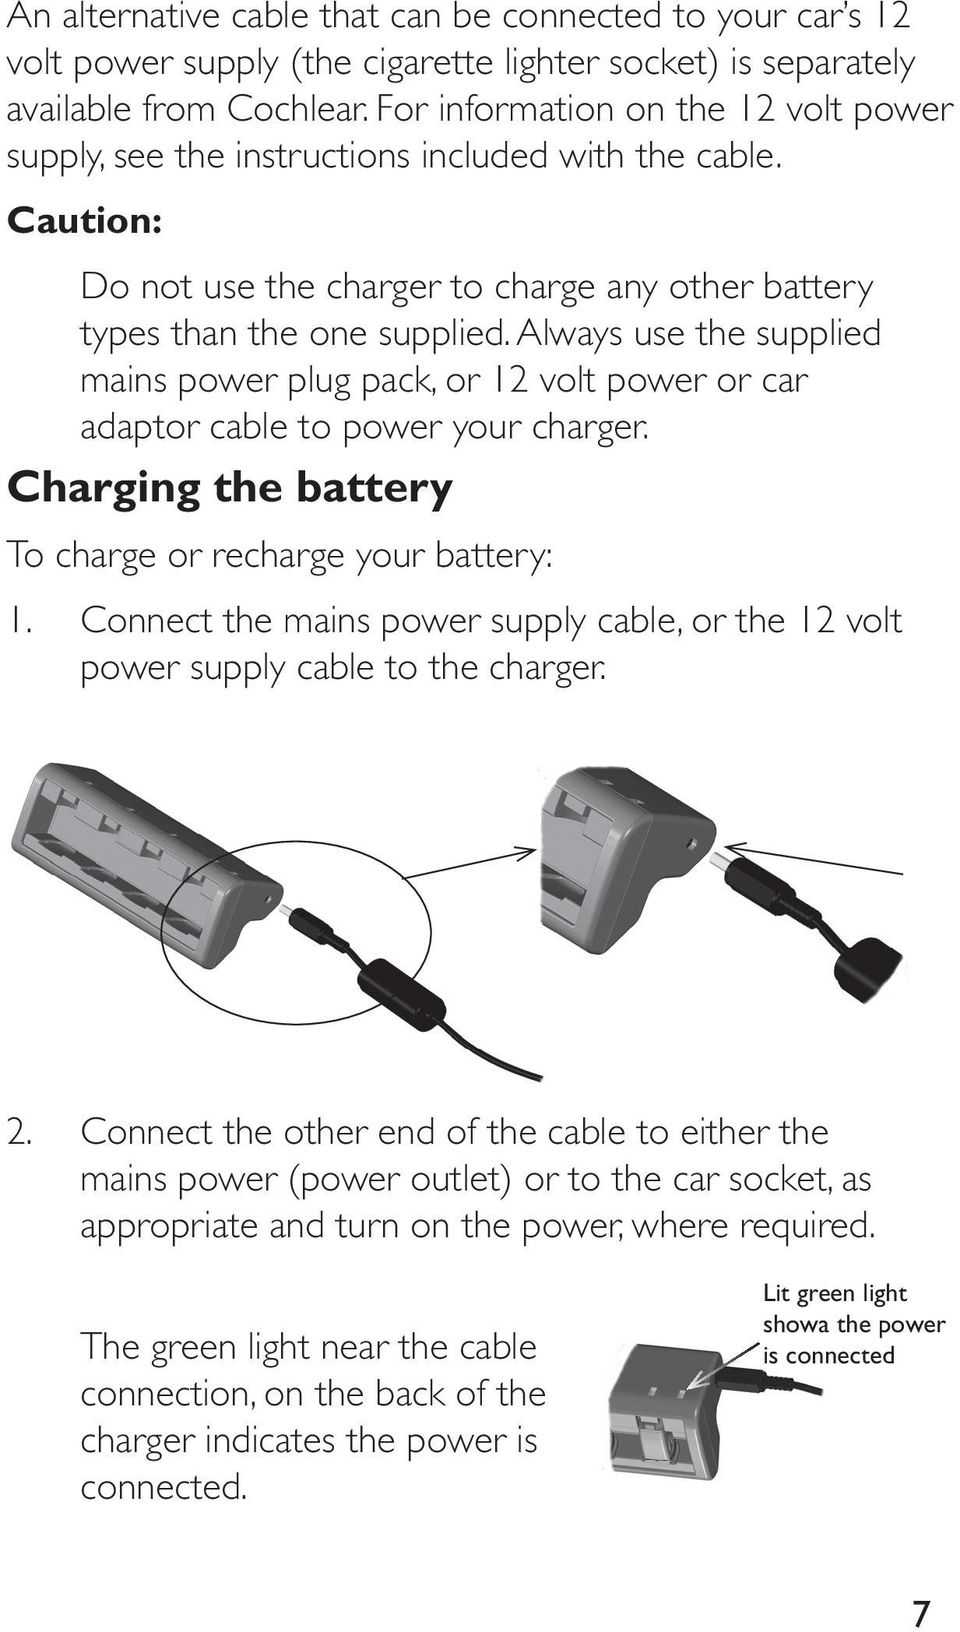 Always use the supplied mains power plug pack, or 12 volt power or car adaptor cable to power your charger. Charging the battery To charge or recharge your battery: 1.